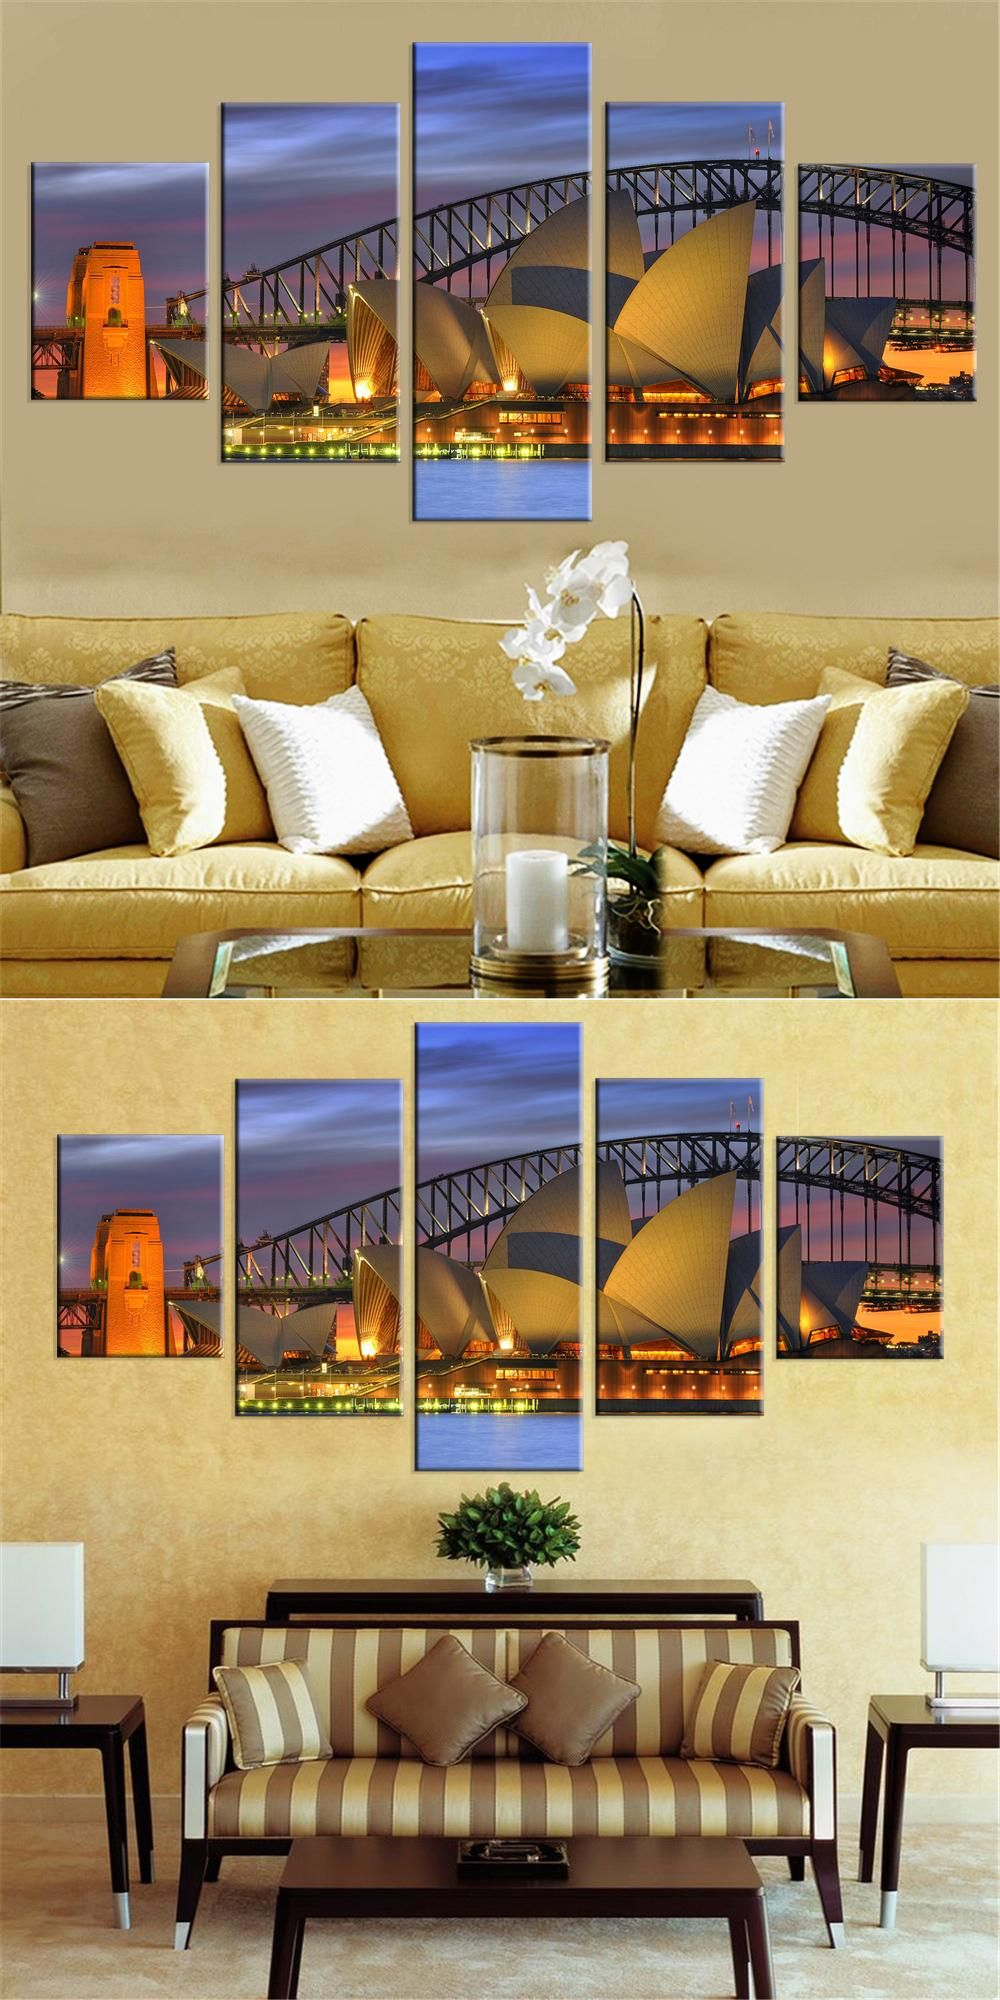 Visit to Buy] Unframed Oil Painting Harbour Bridge Canvas Prints ...